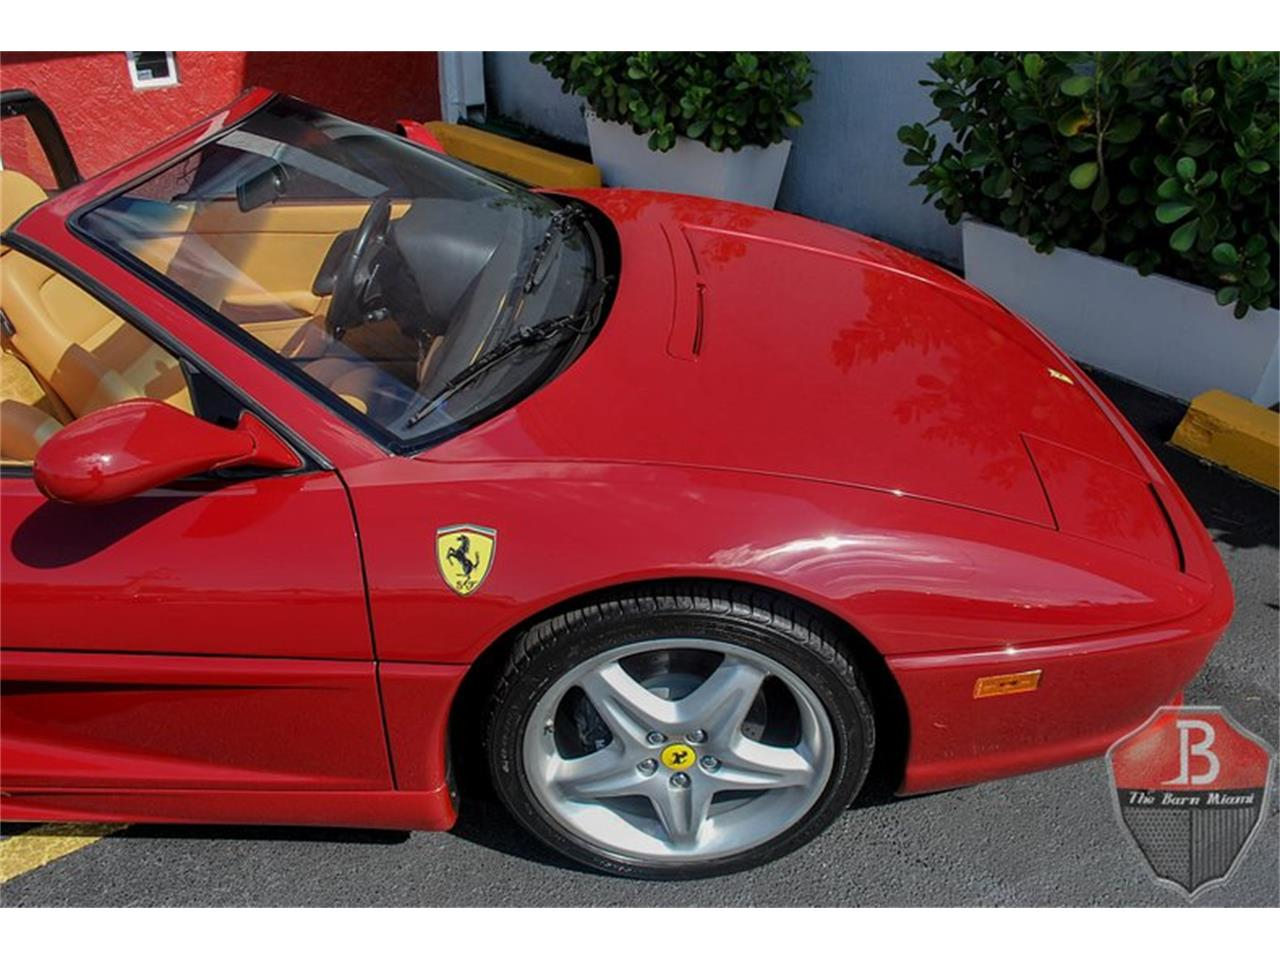 Large Picture of 1999 Ferrari F355 located in Florida Offered by The Barn Miami - N6Y8